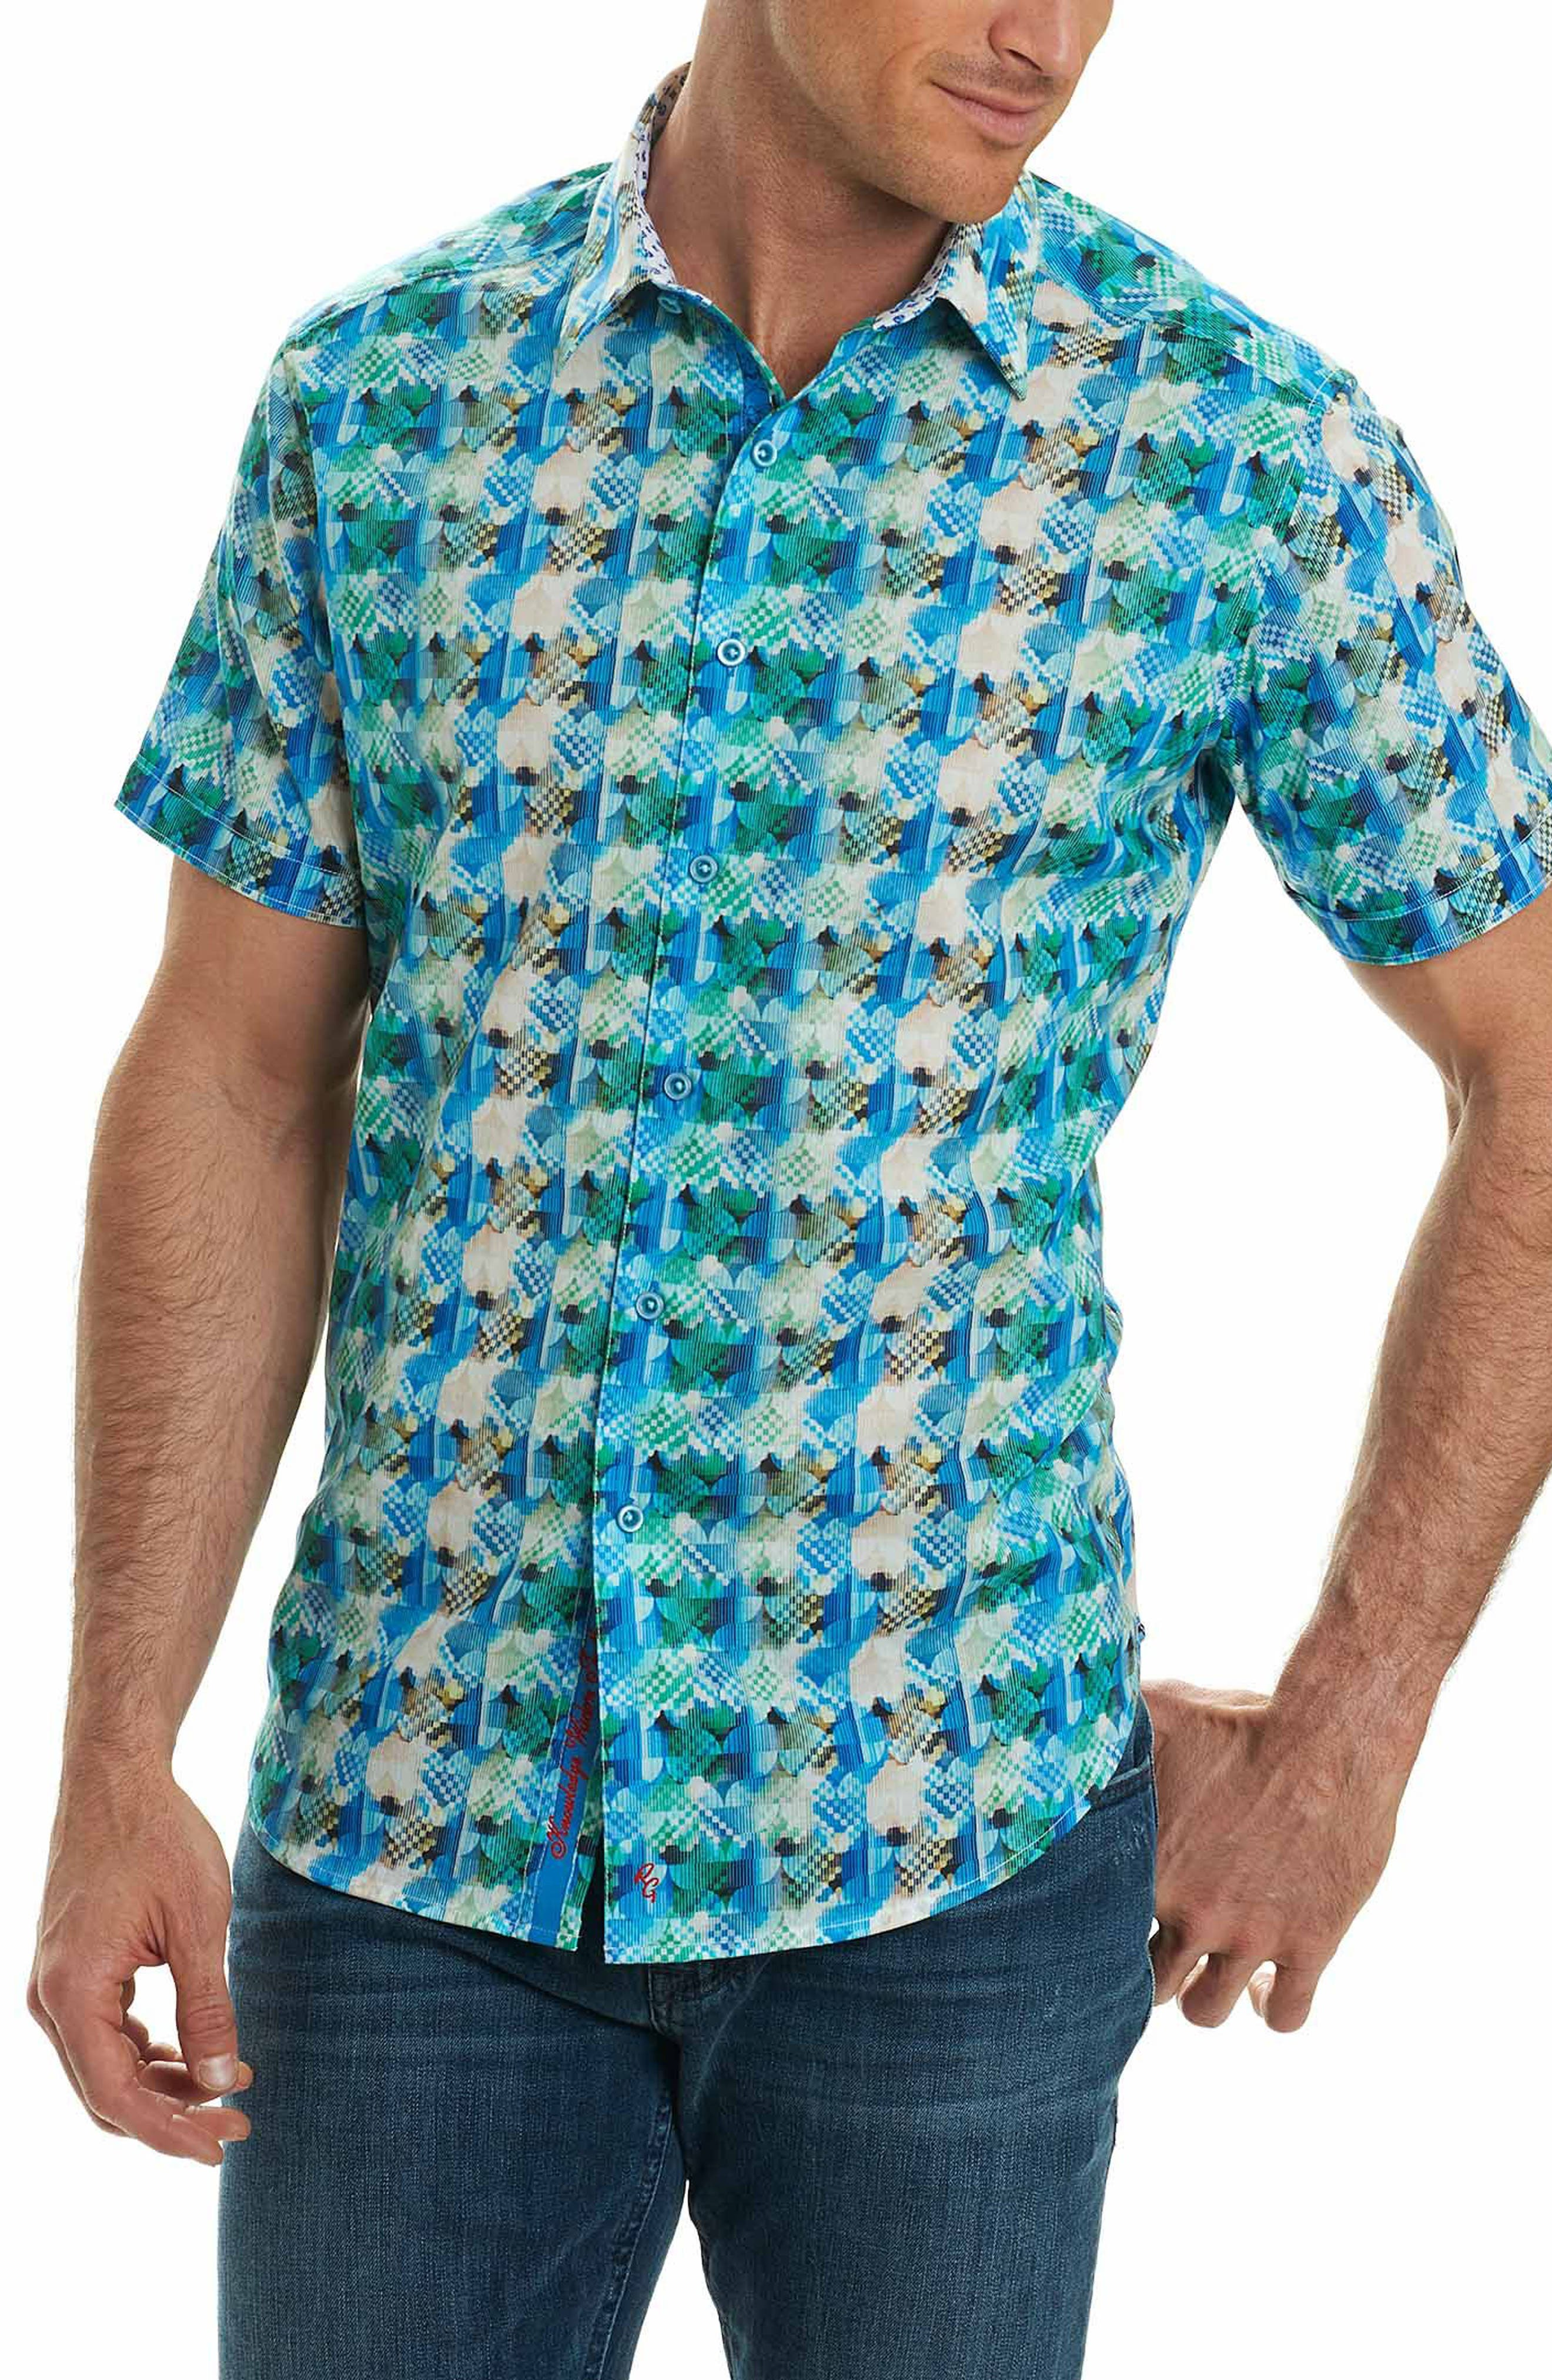 Illusions Sport Shirt,                         Main,                         color, Turquoise